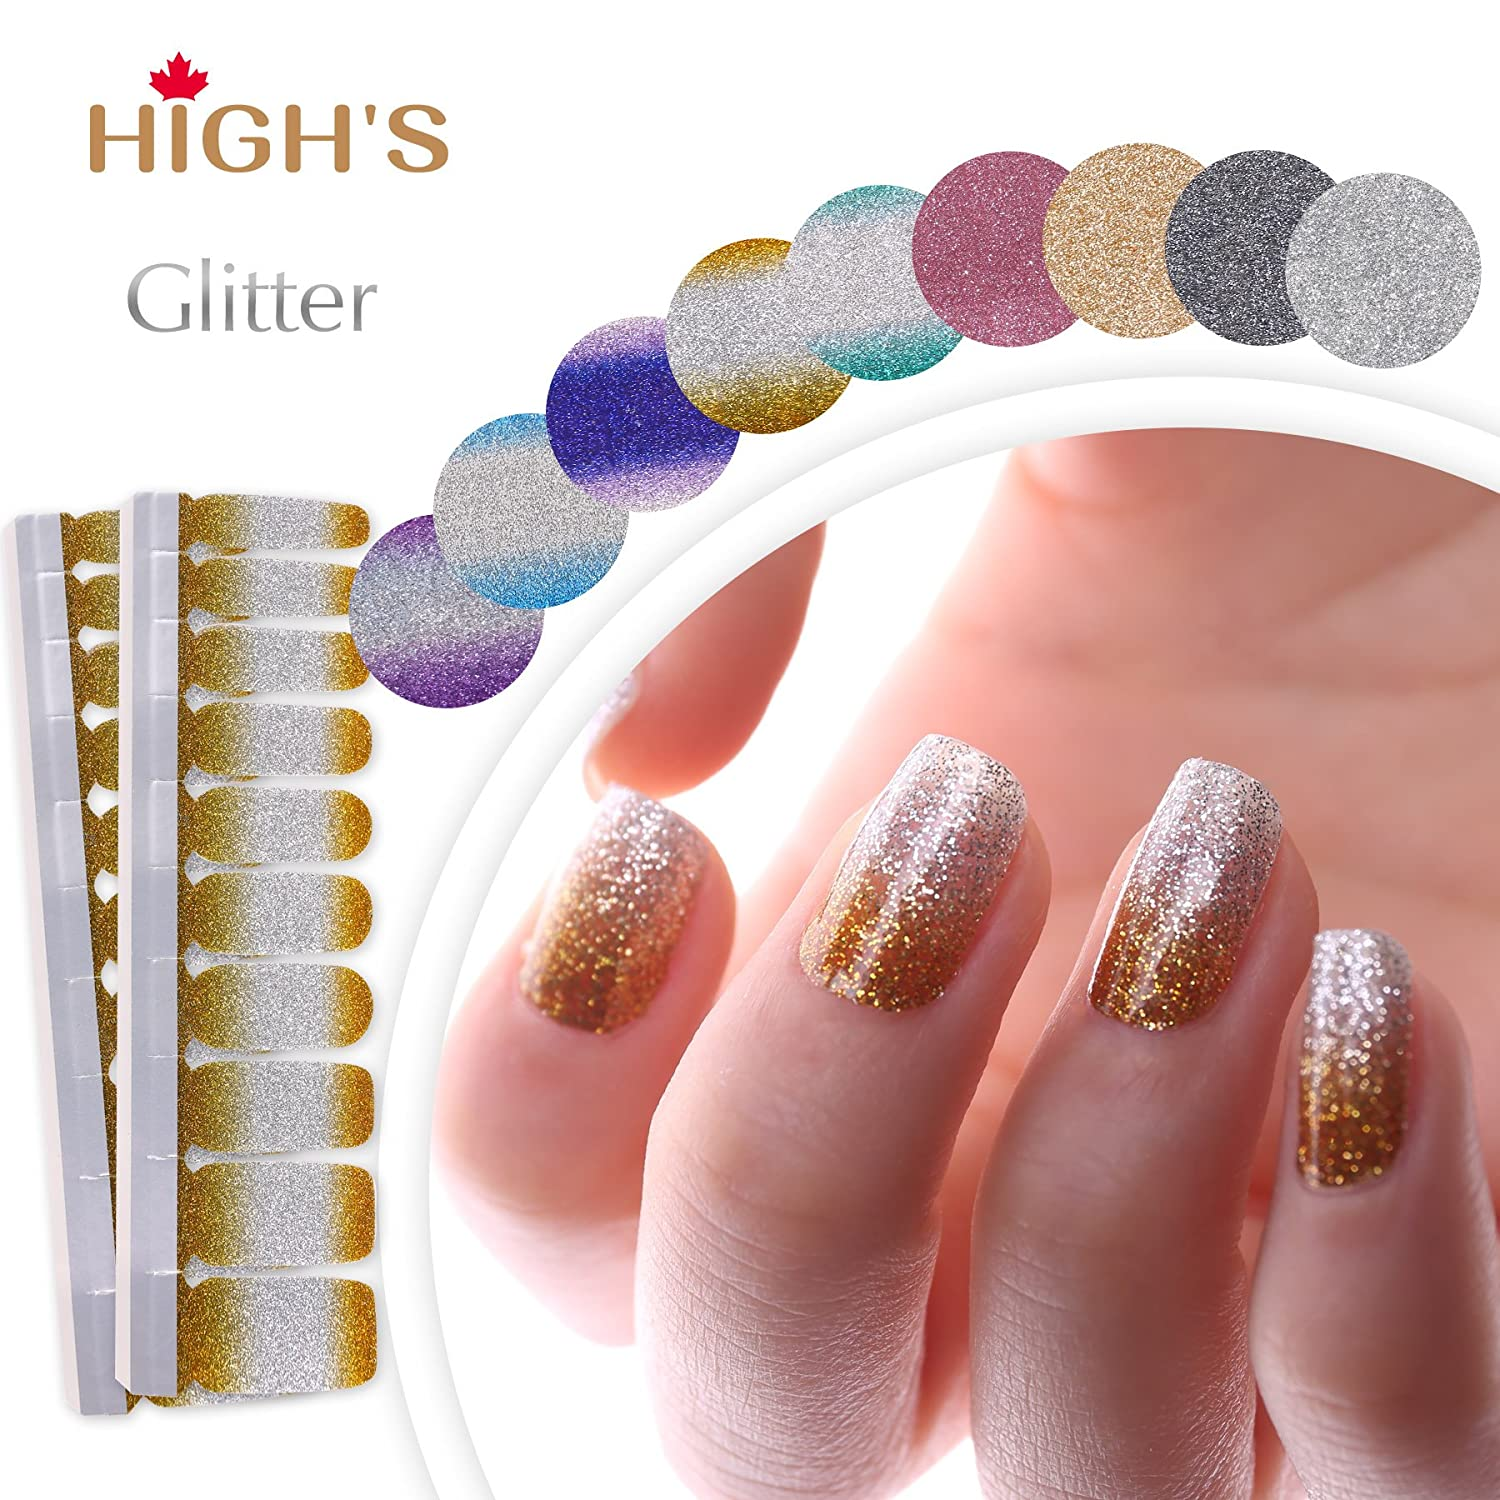 HIGH'S EXTRE ADHESION 20pcs Nail Art Transfer Decals Sticker Glitter Series The Cocktail Collection Manicure DIY Nail Polish Strips Wraps for Wedding, Party, Shopping, Travelling (Golden Age) HIGH' S